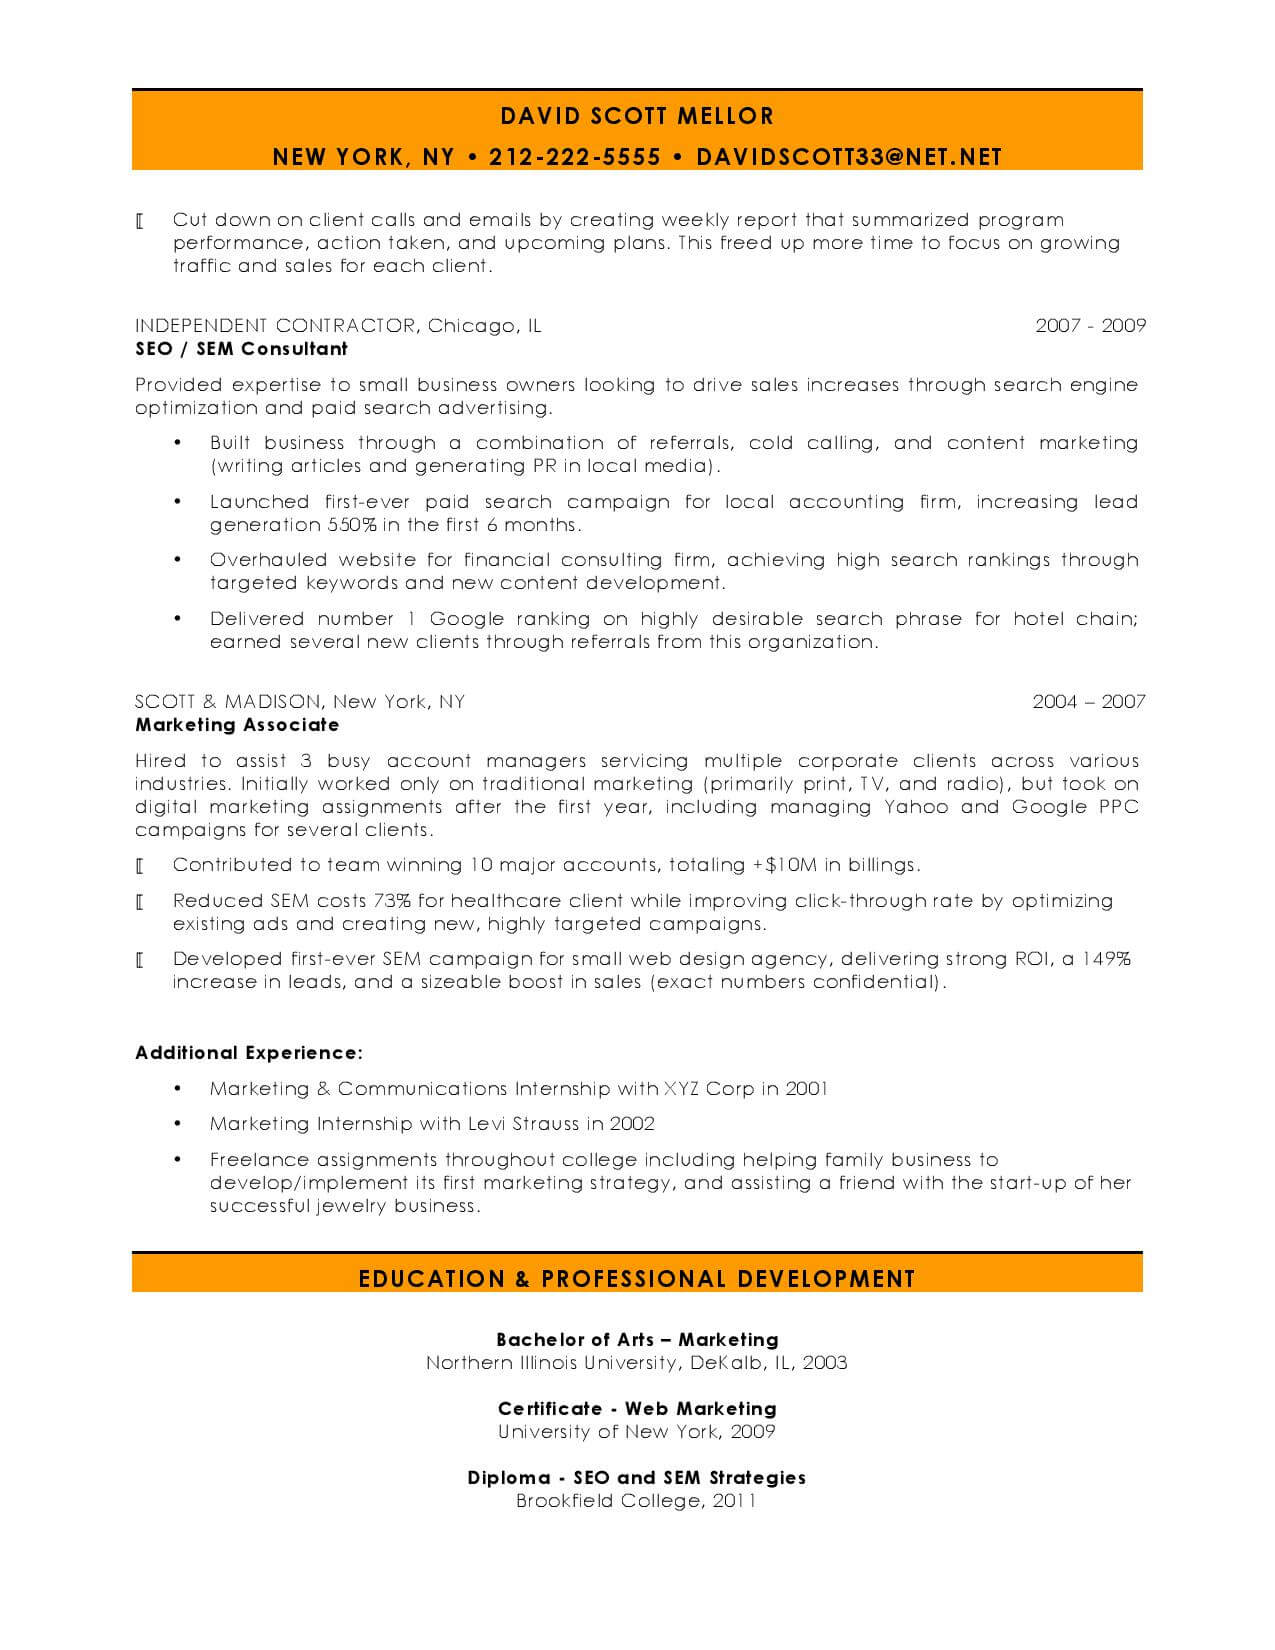 Personal Marketing Resume Seo Manager Page 002 Sidekick By Kickresume